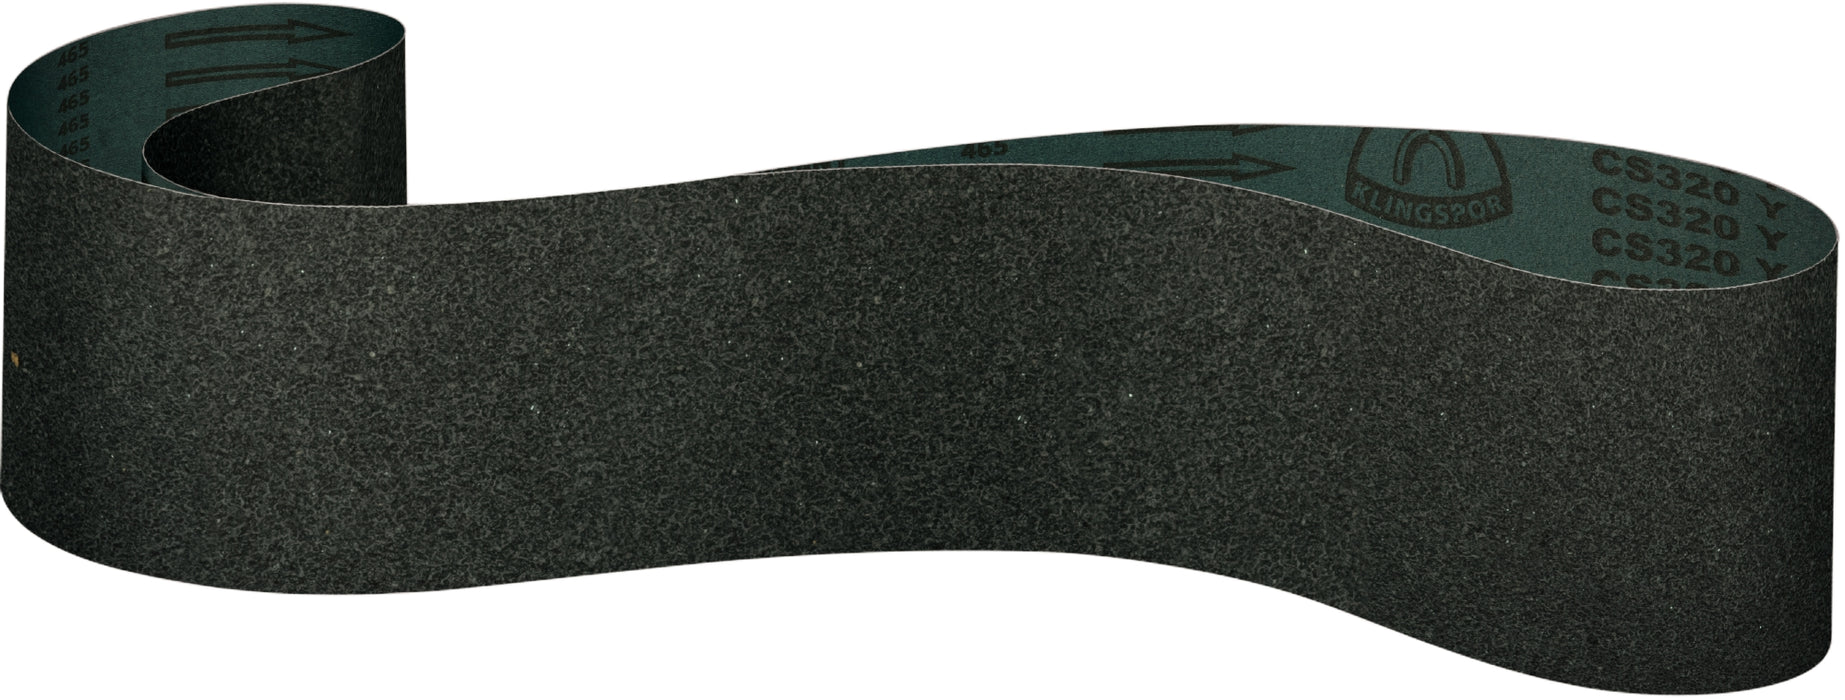 Narrow Belts Klingspor 302746 4 Inch x 106 Inch Sanding Belt 60 Grit CS320Y Silicon Carbide Y Polyester Backing